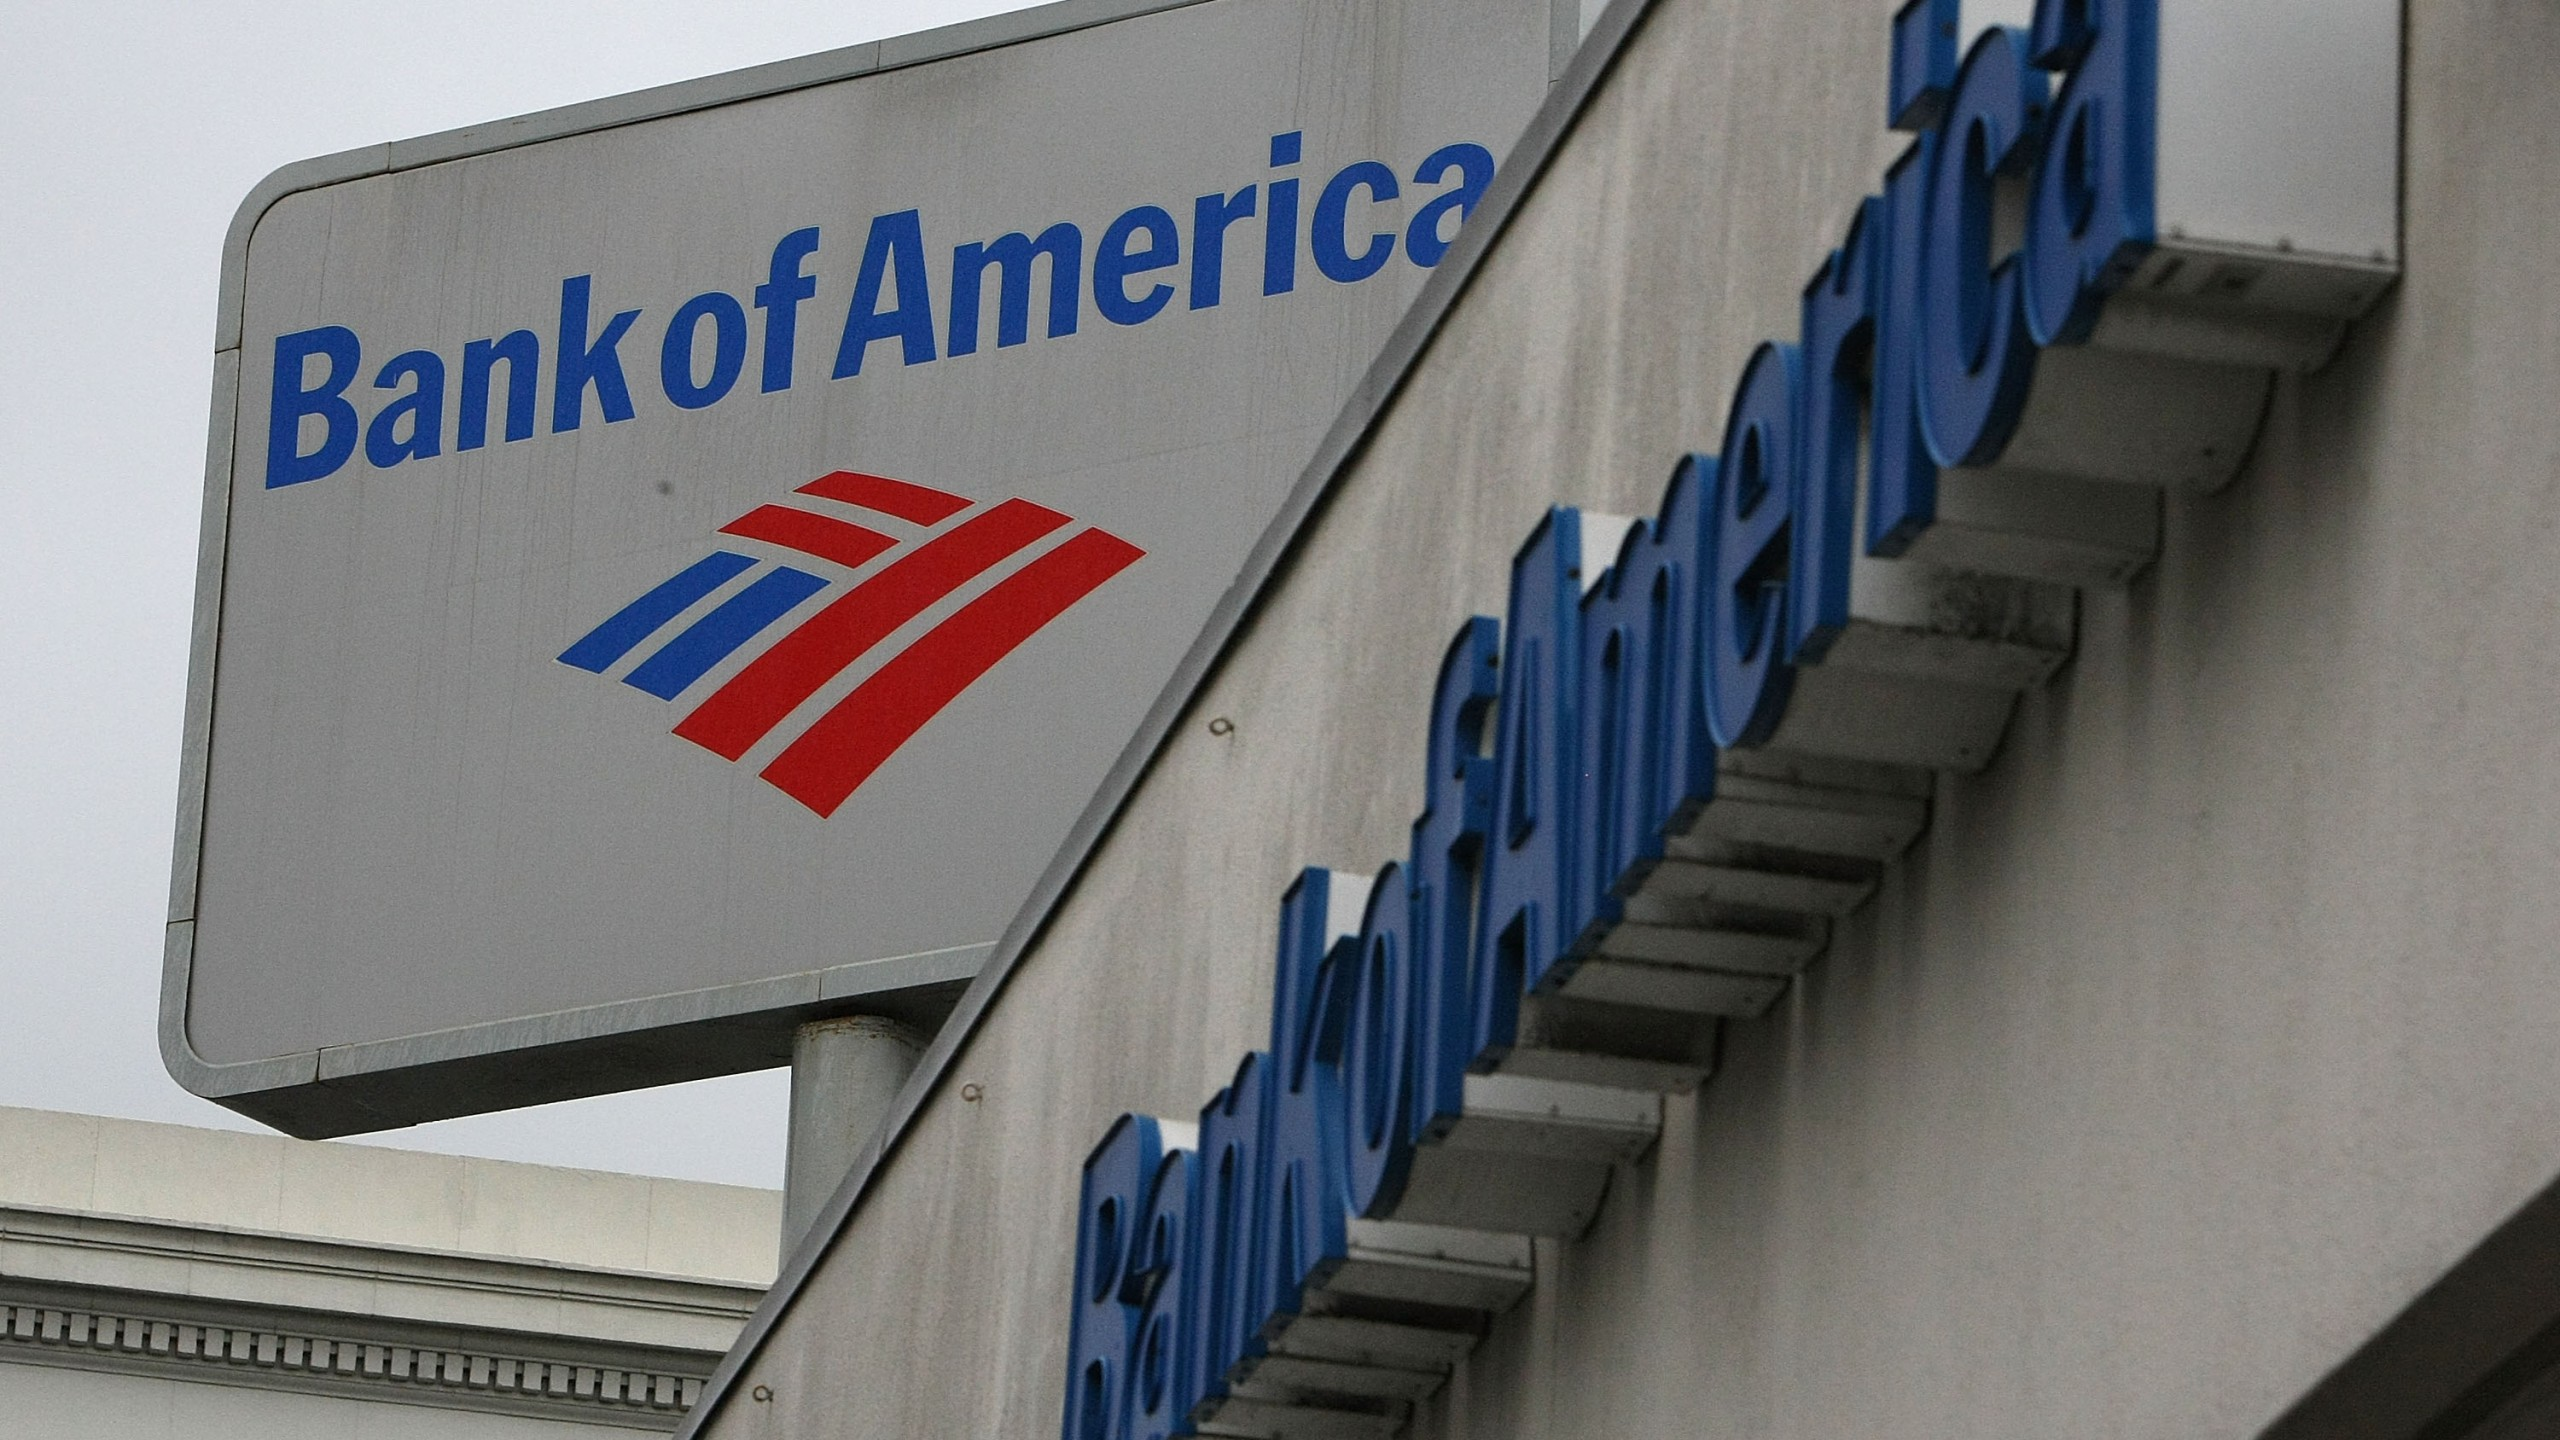 The Bank of America logo is displayed on the side of a Bank of America branch office January 20, 2010 in San Francisco, California. (Credit: Justin Sullivan/Getty Images)